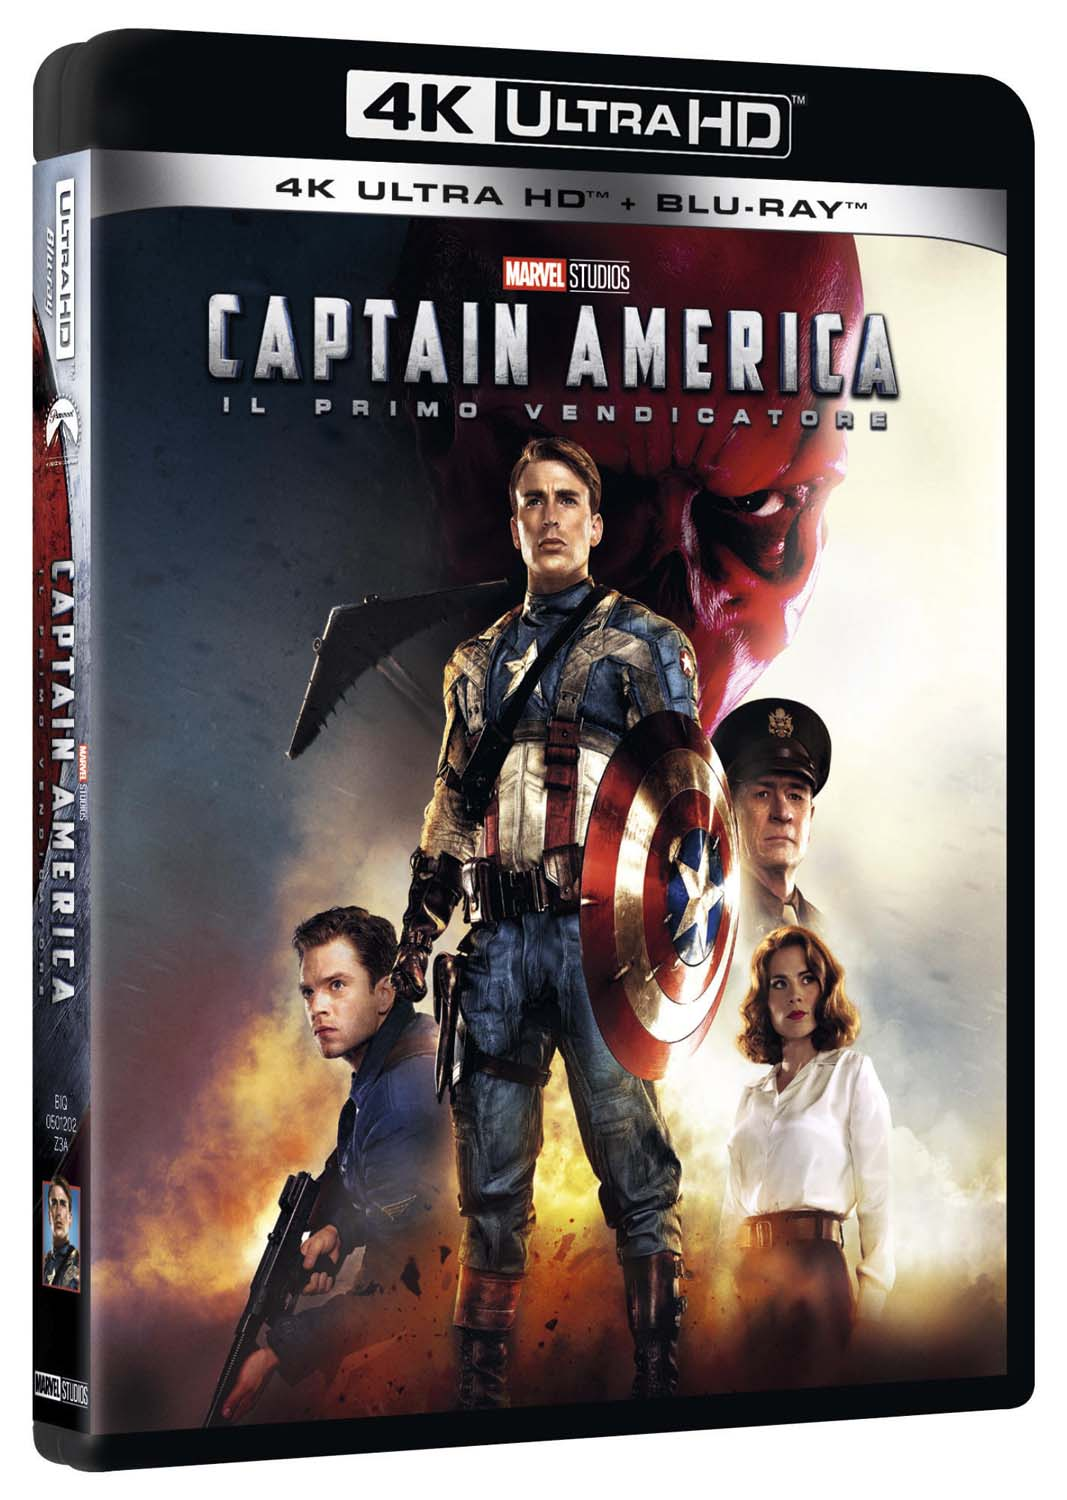 CAPTAIN AMERICA (UHD)